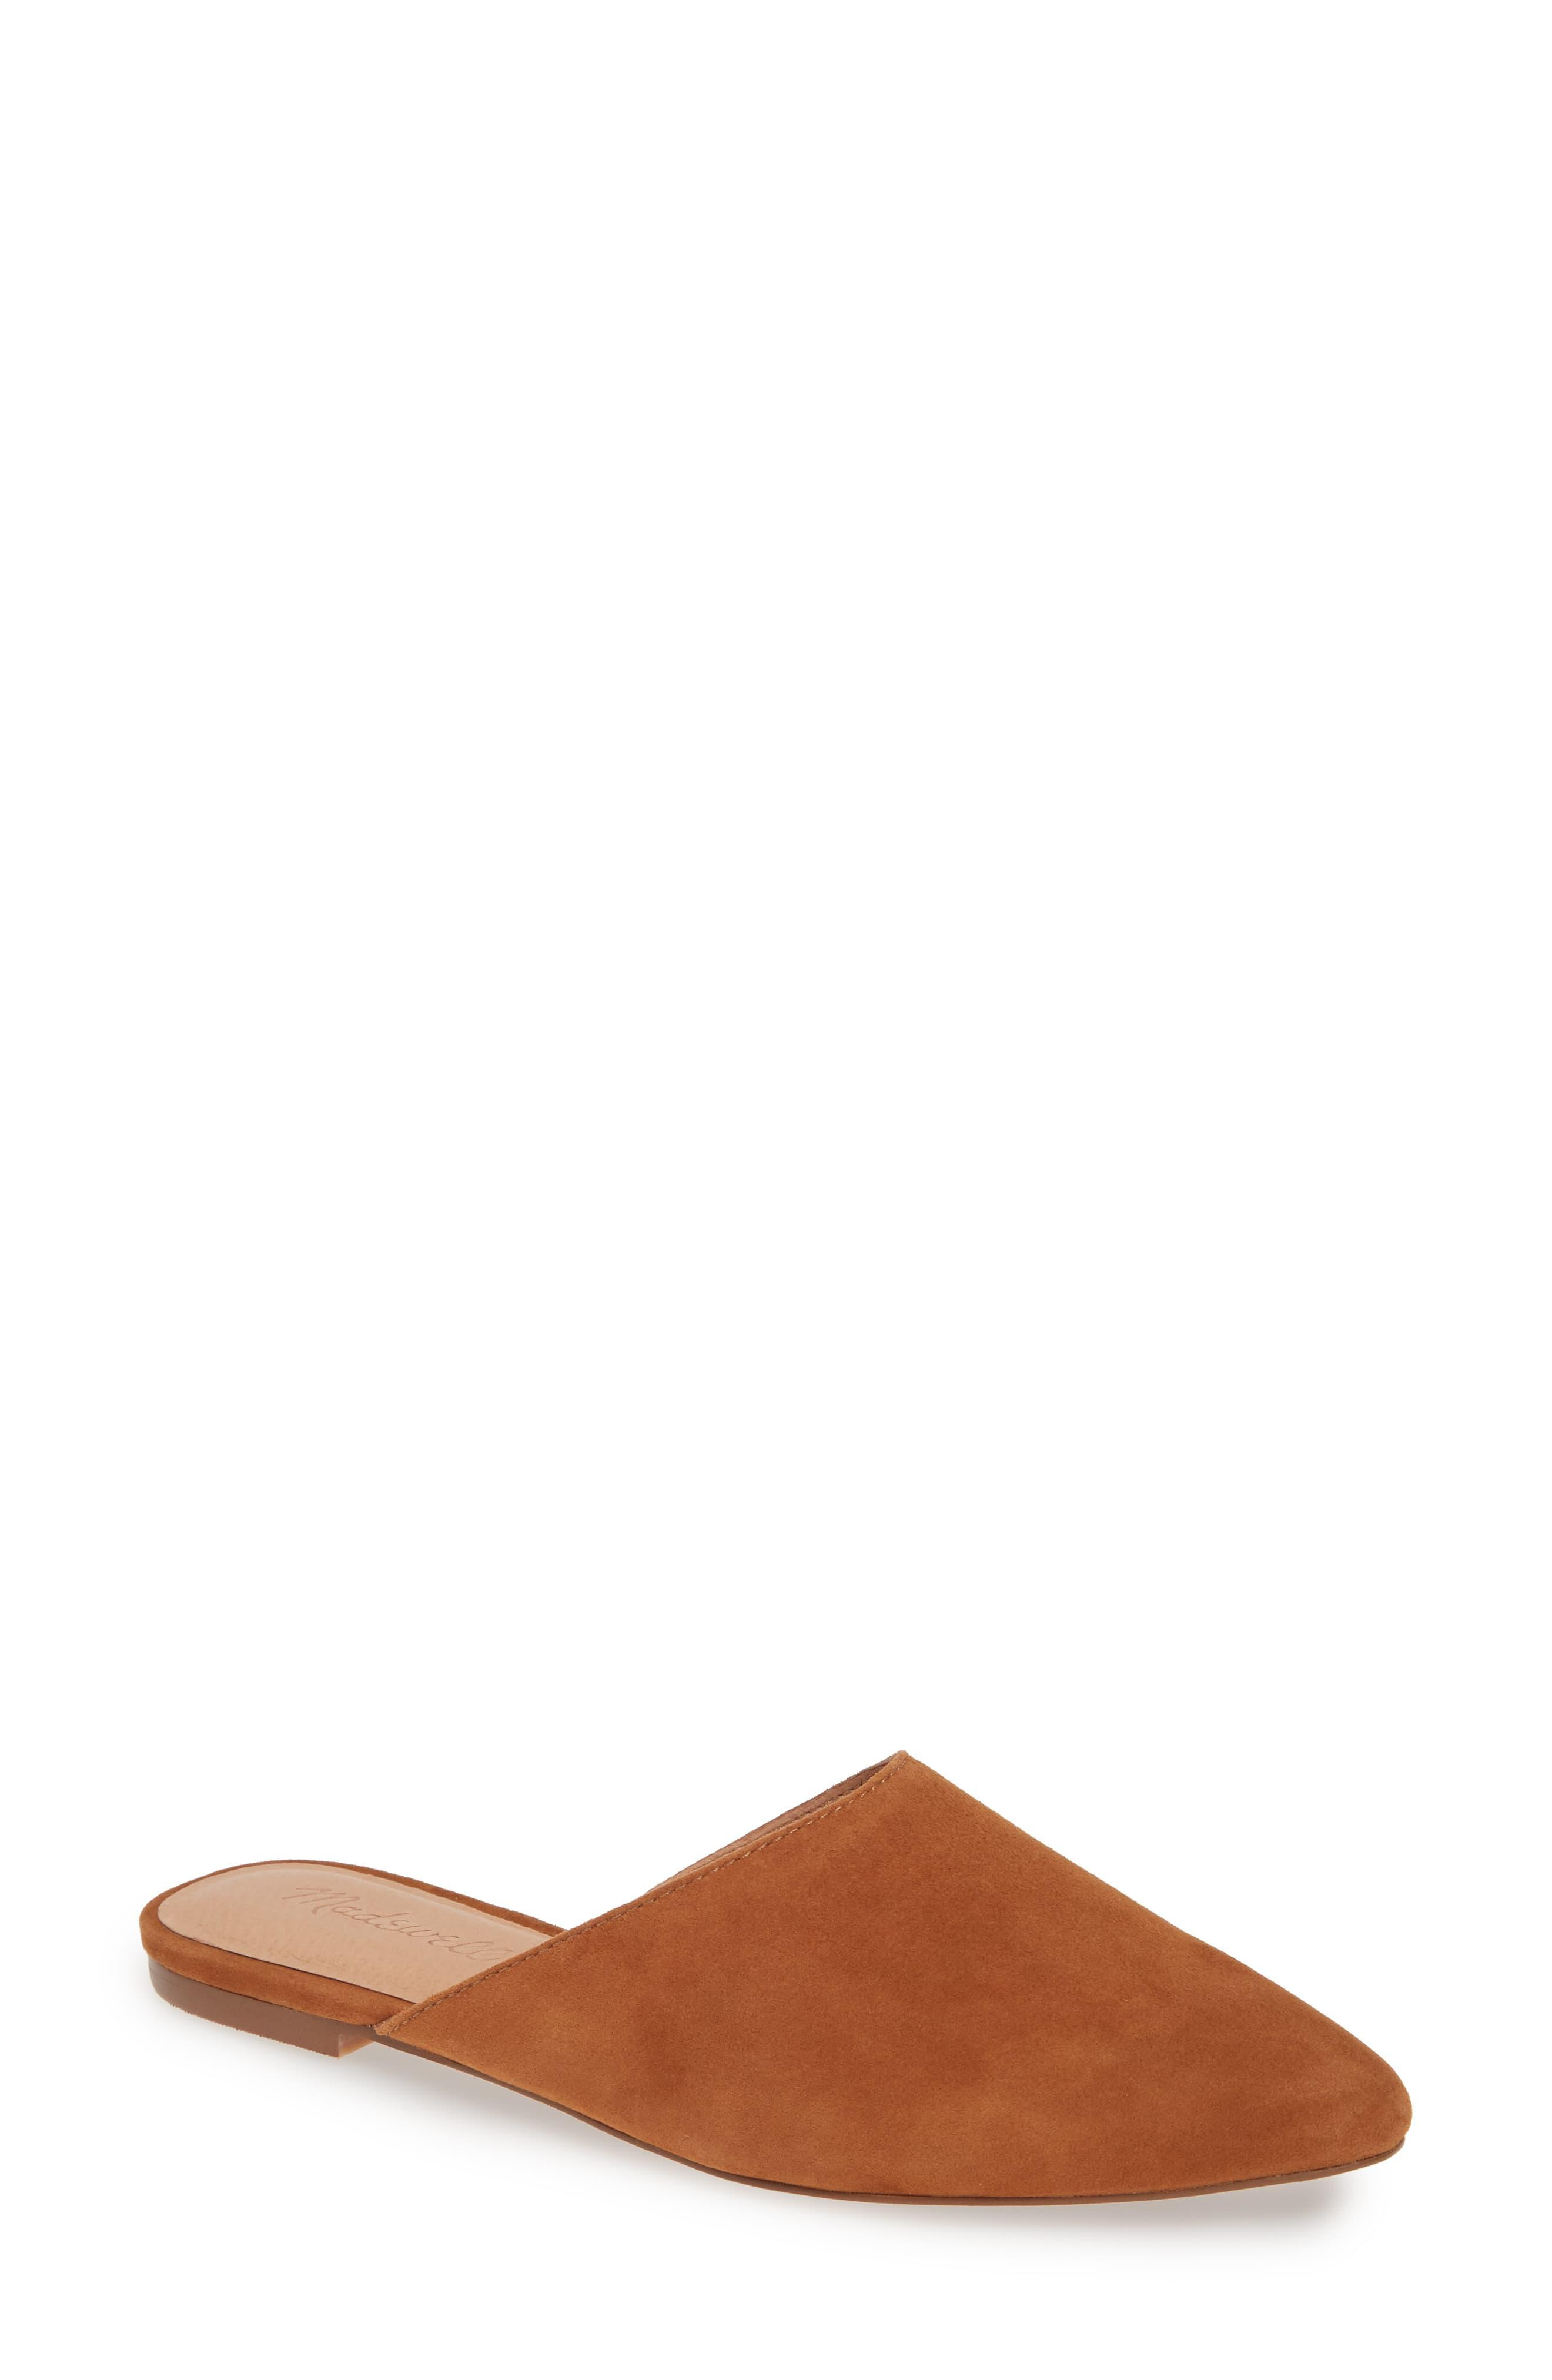 79eef11c08ce5 Madewell Remi Mule - Save 39% - Lyst